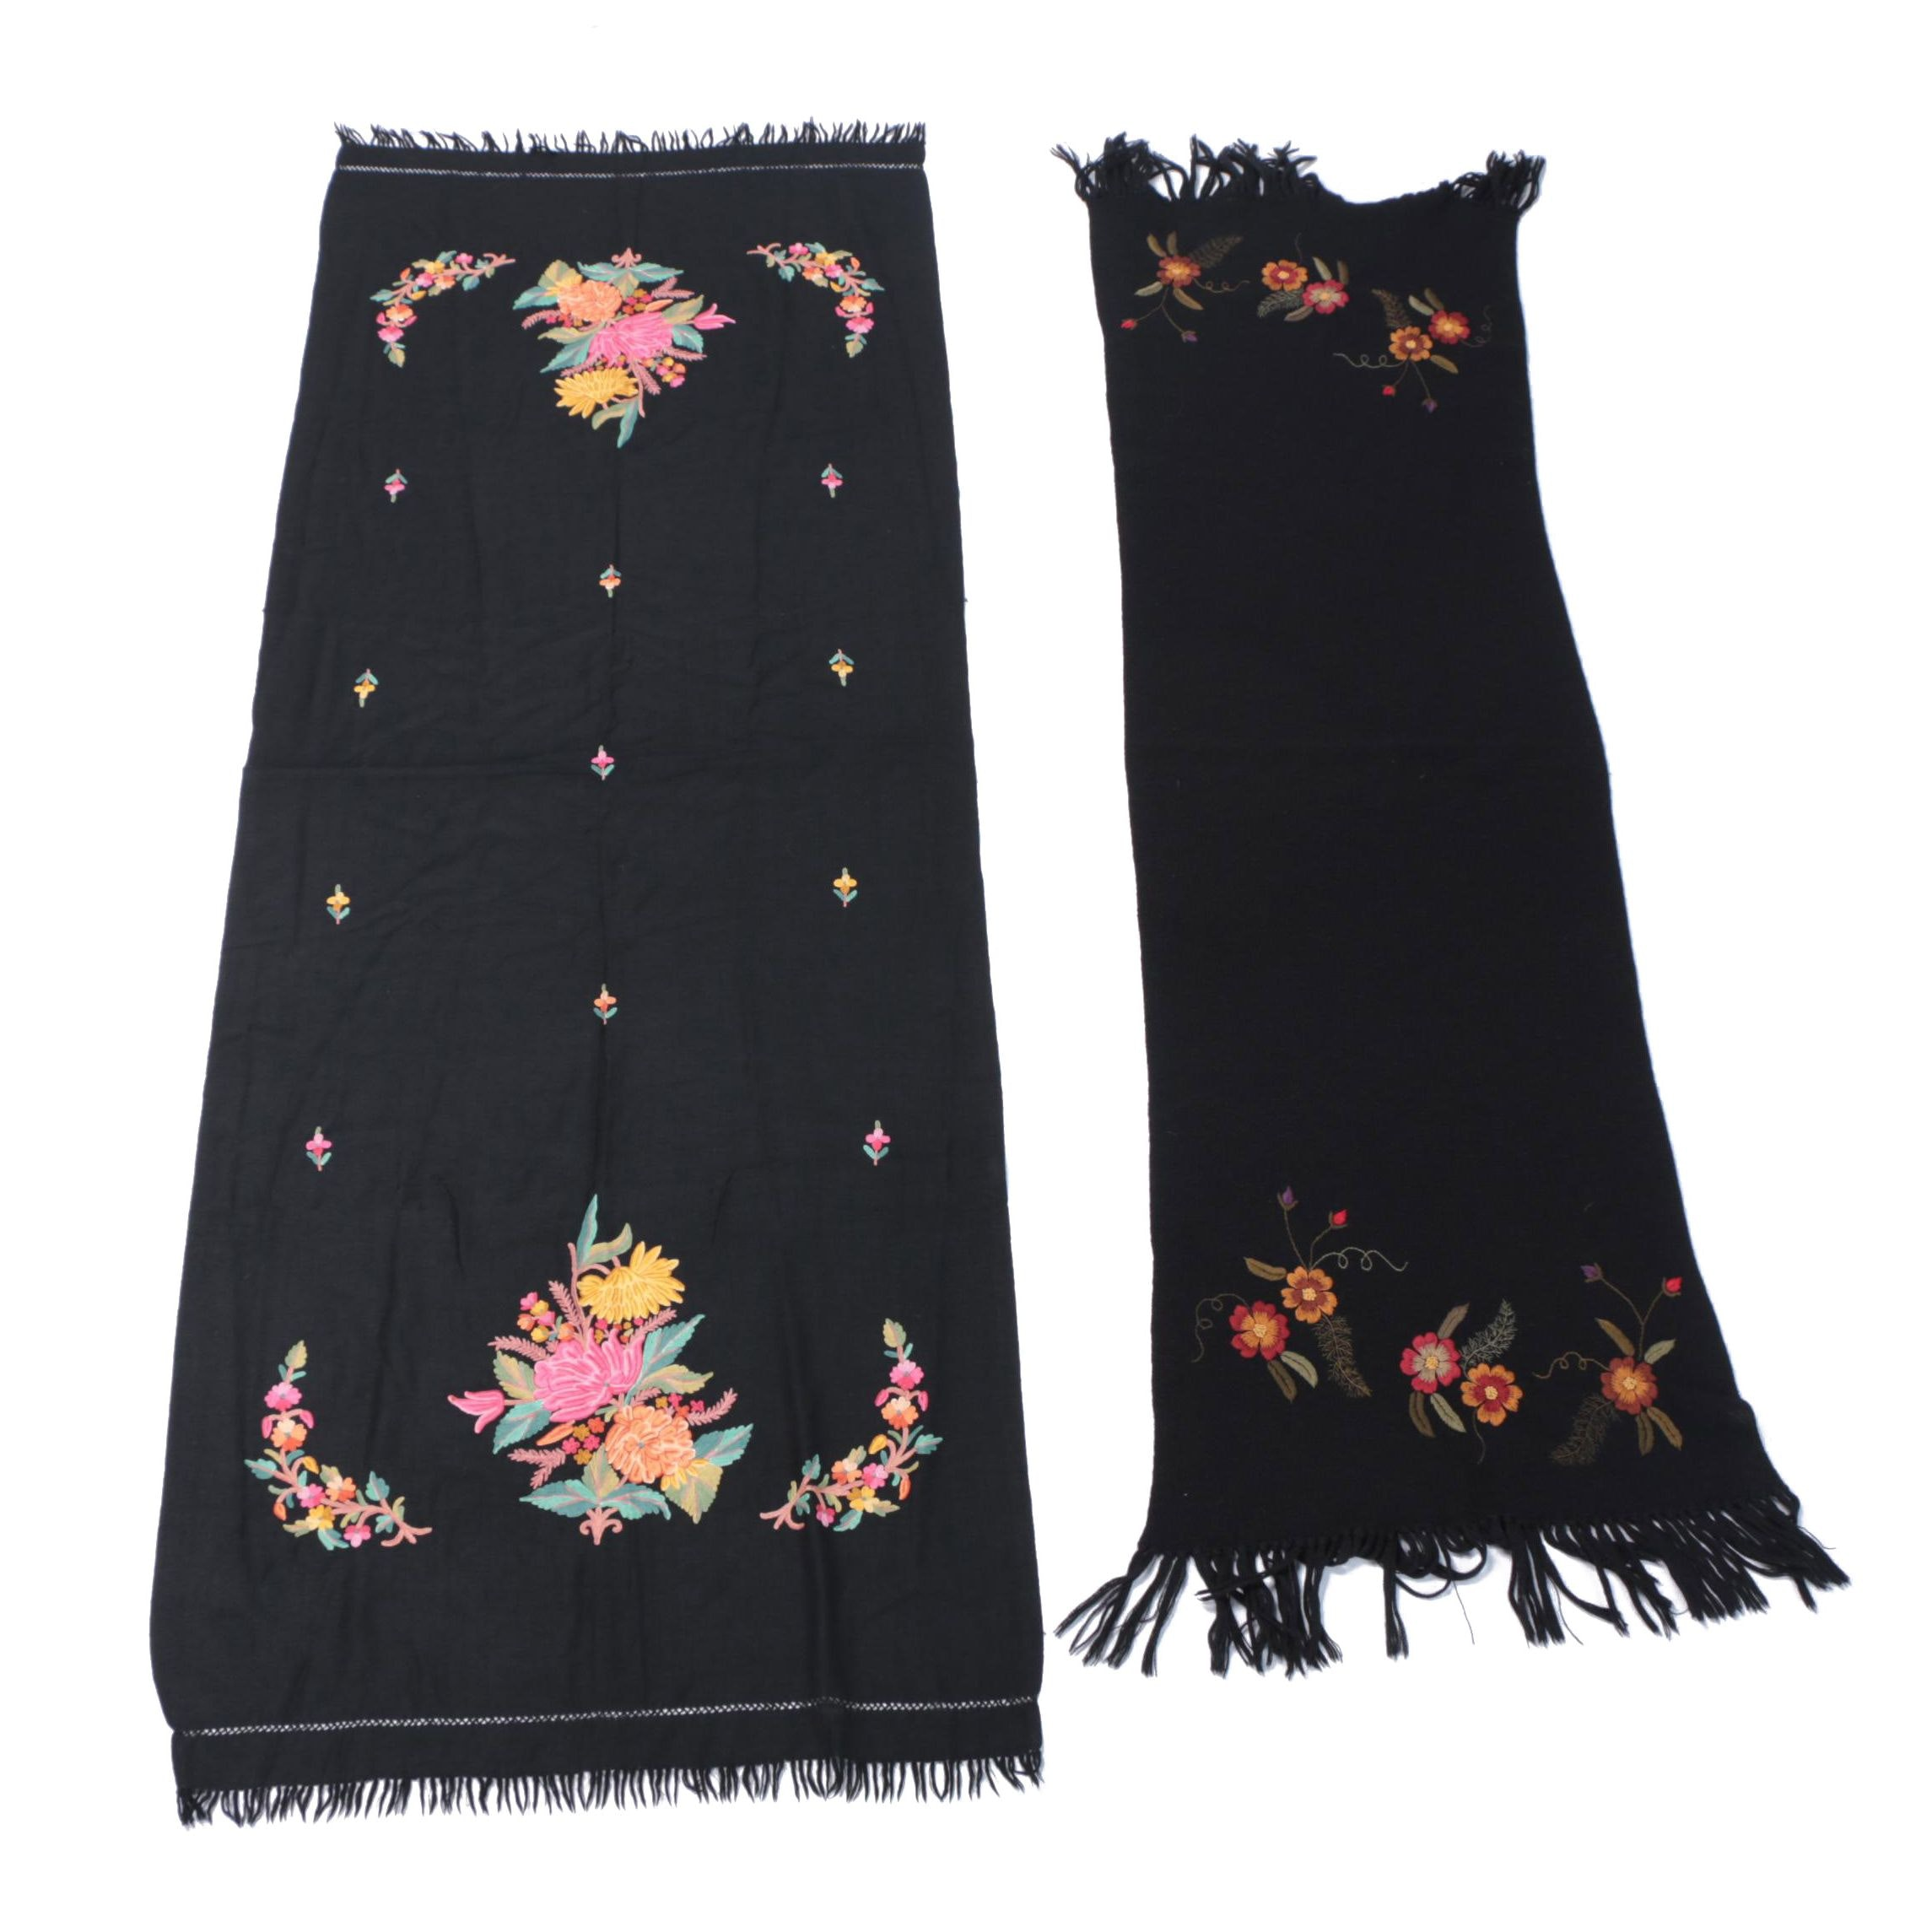 Frenkel's Floral Embroidered Scarves